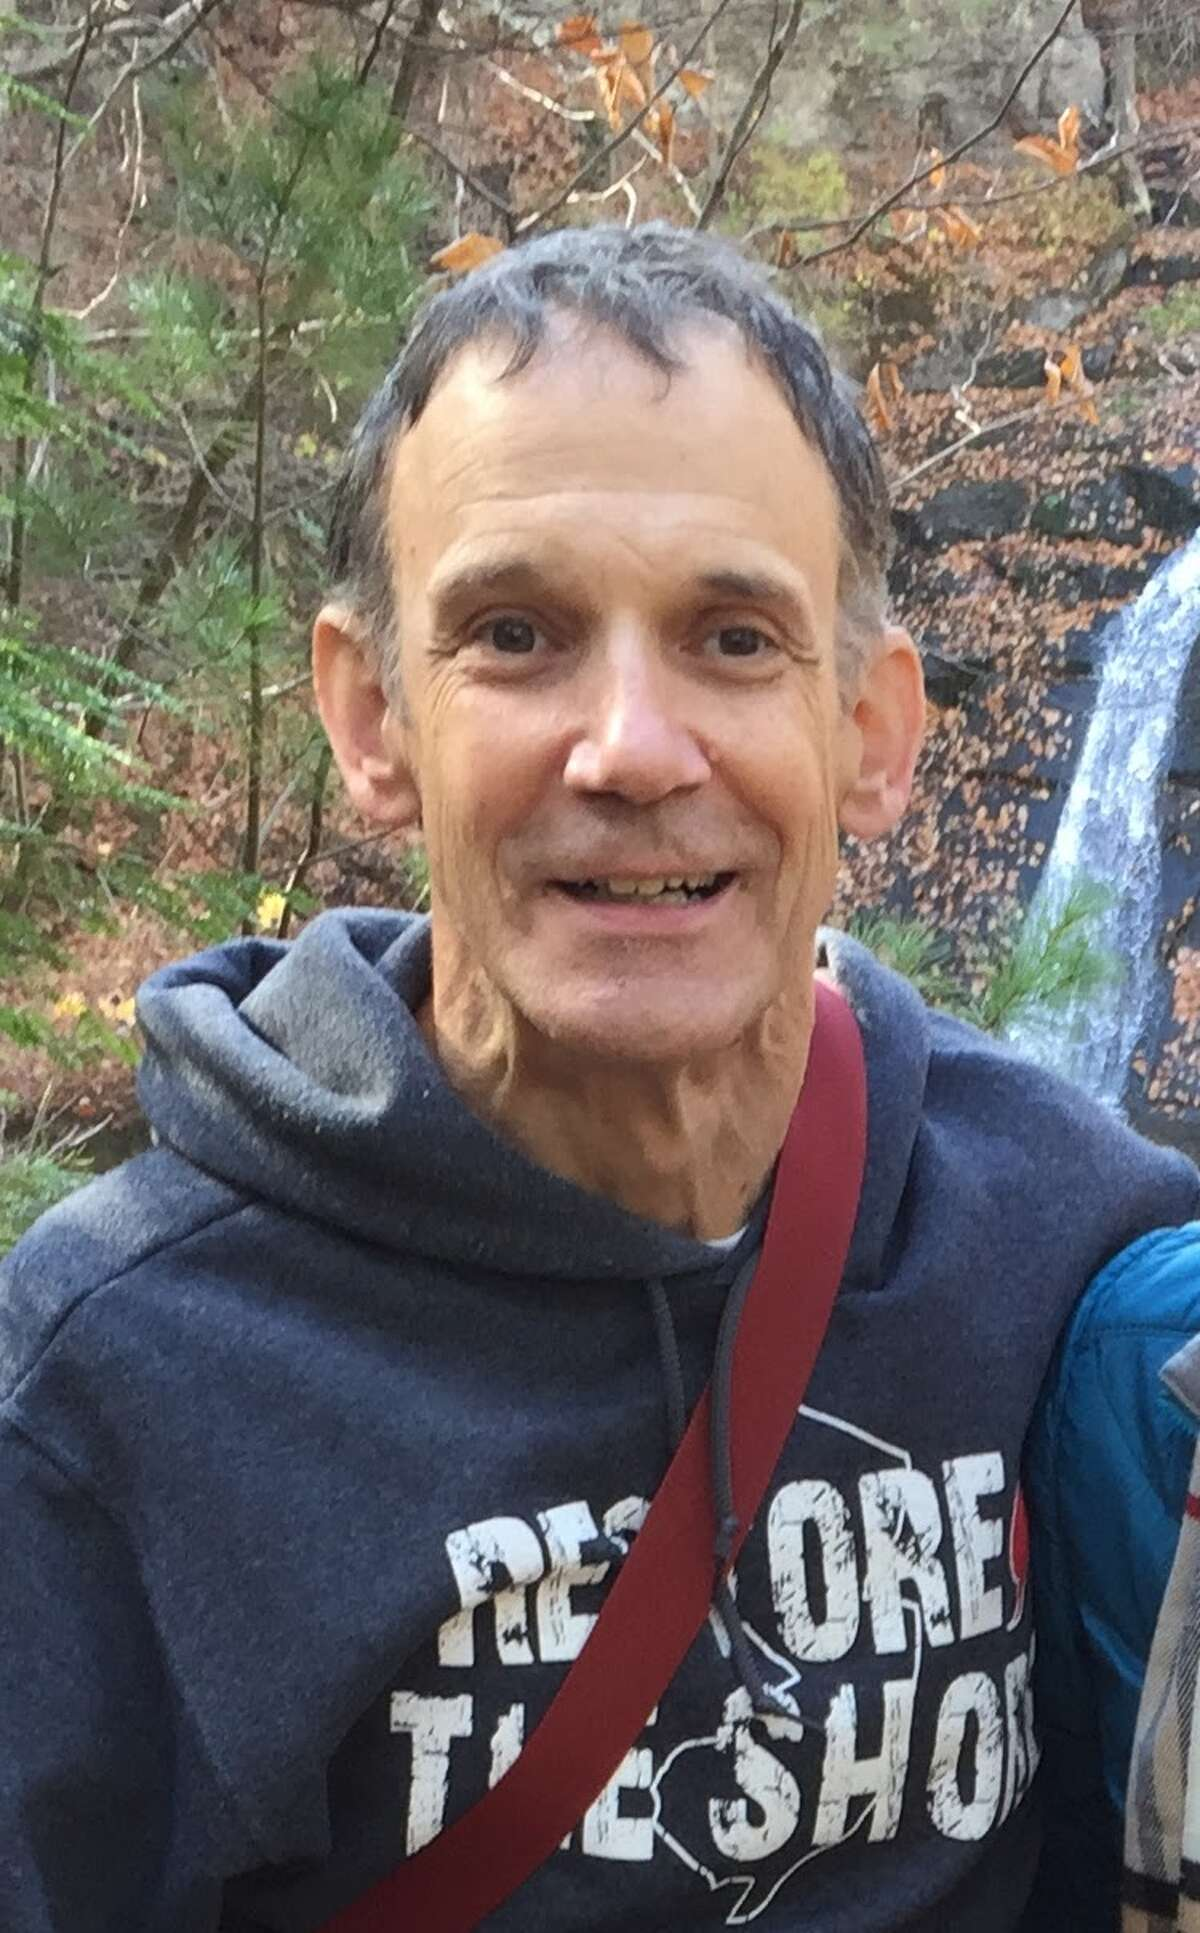 Tom Stephany, his sister believes, likely became infected with COVID-19 after eating at a restaurant where someone tested positive. He died on Dec. 1.